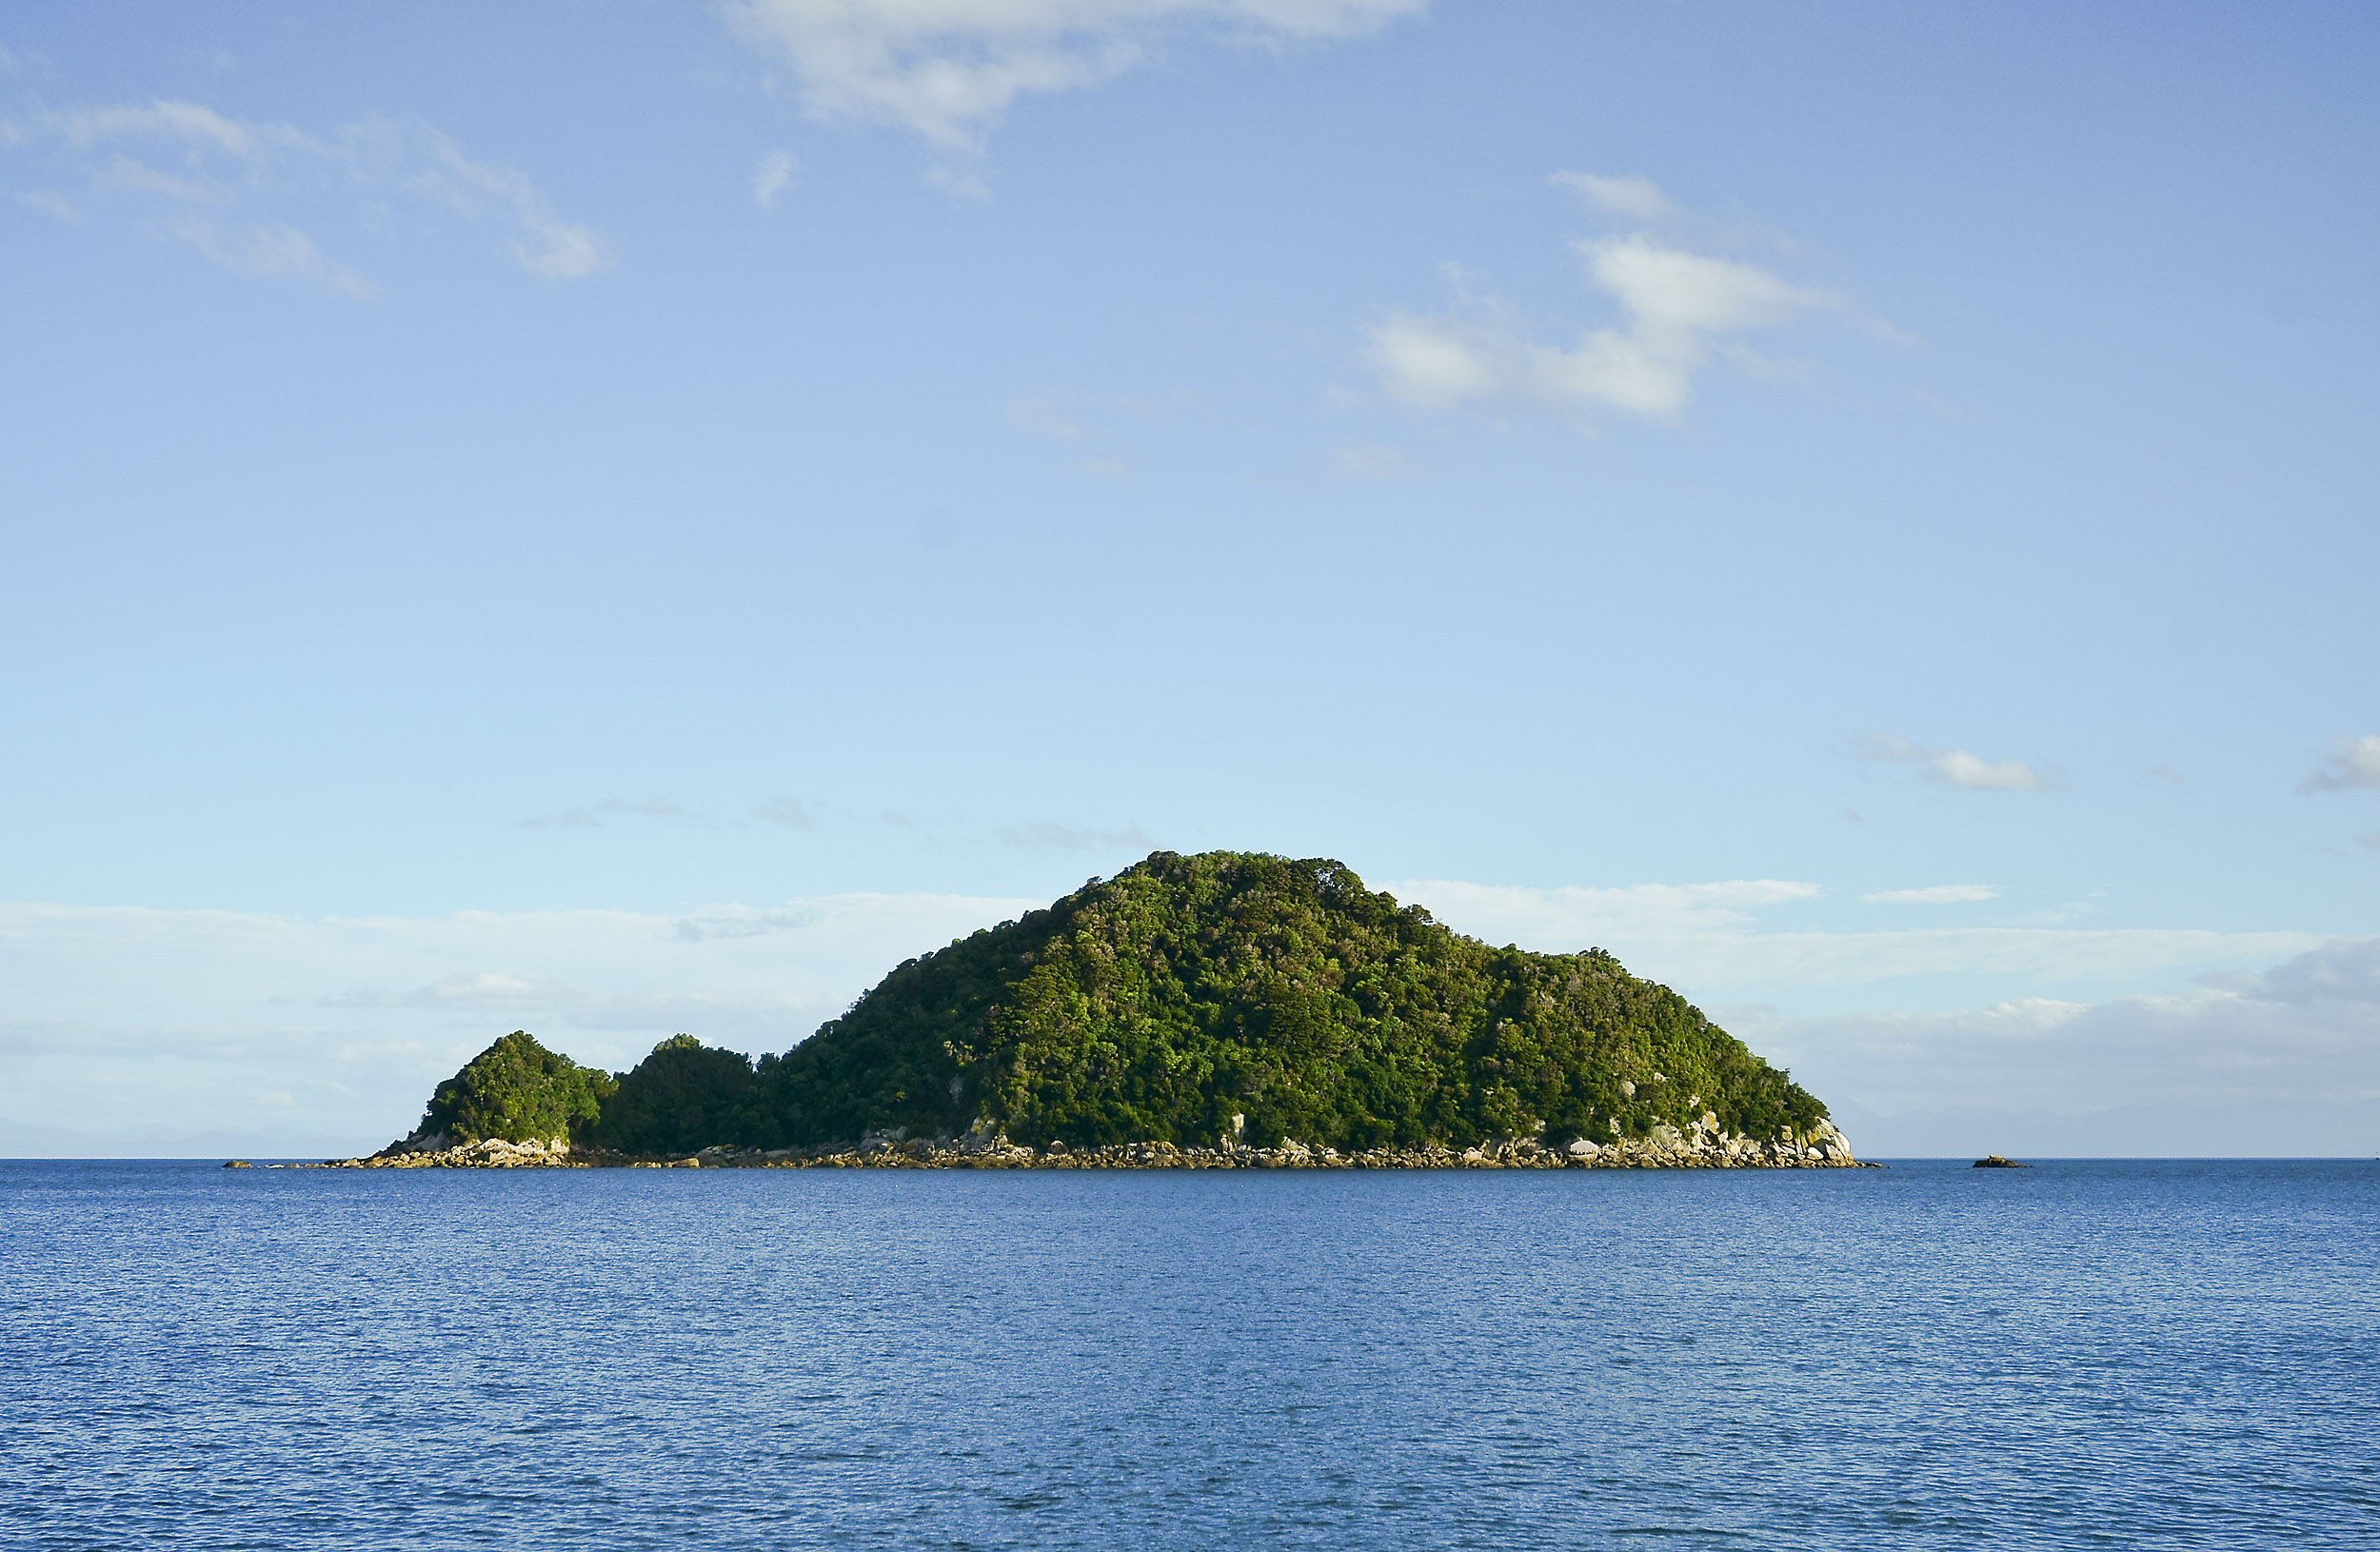 A green bush covered island rising out of the blue sea, New Zealand